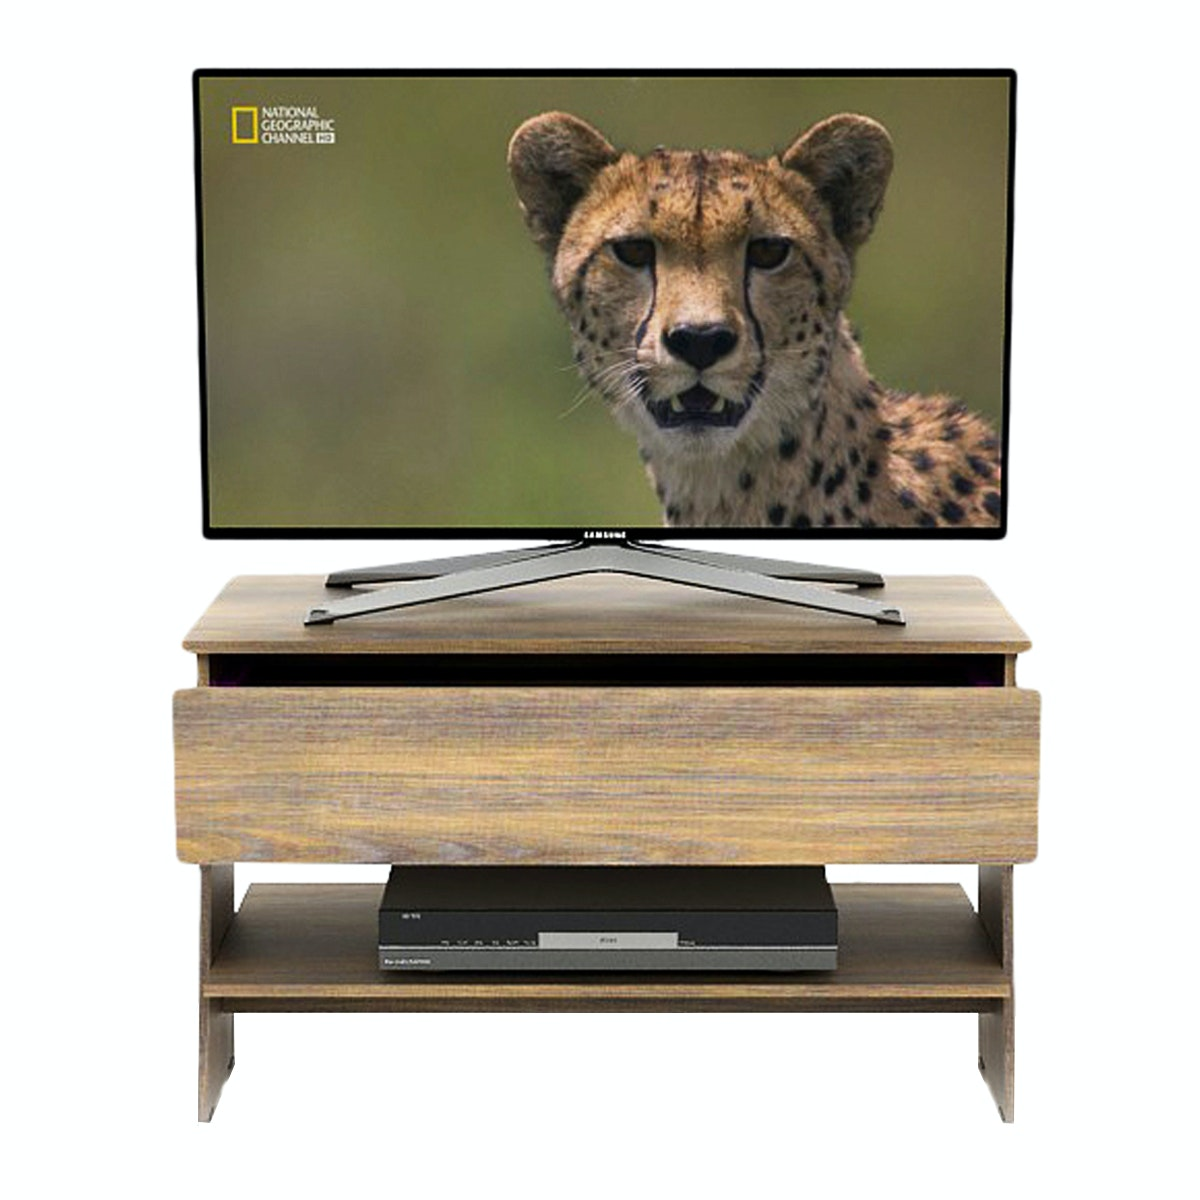 Funika VLTV 81 Japan OAK Brown - Rak TV Minimalis dengan Laci